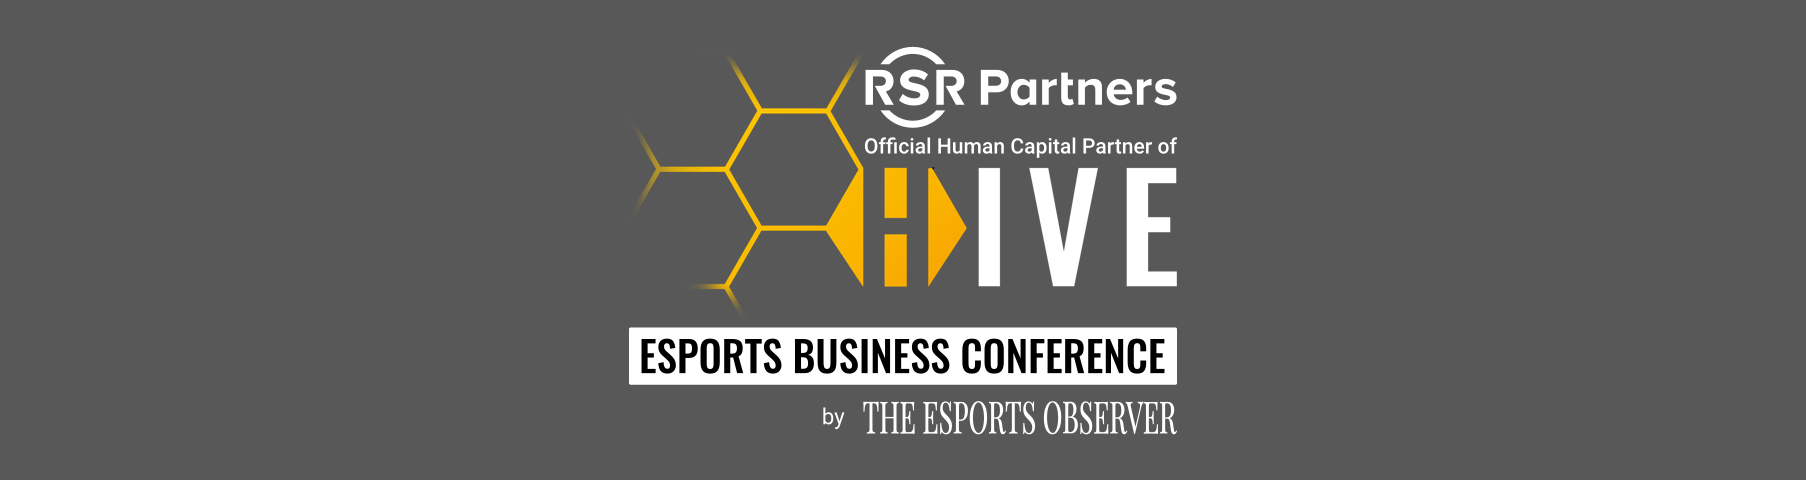 RSR Partners Official Human Capital Partner of HIVE Esports Business Conference presented by The Esports Observer